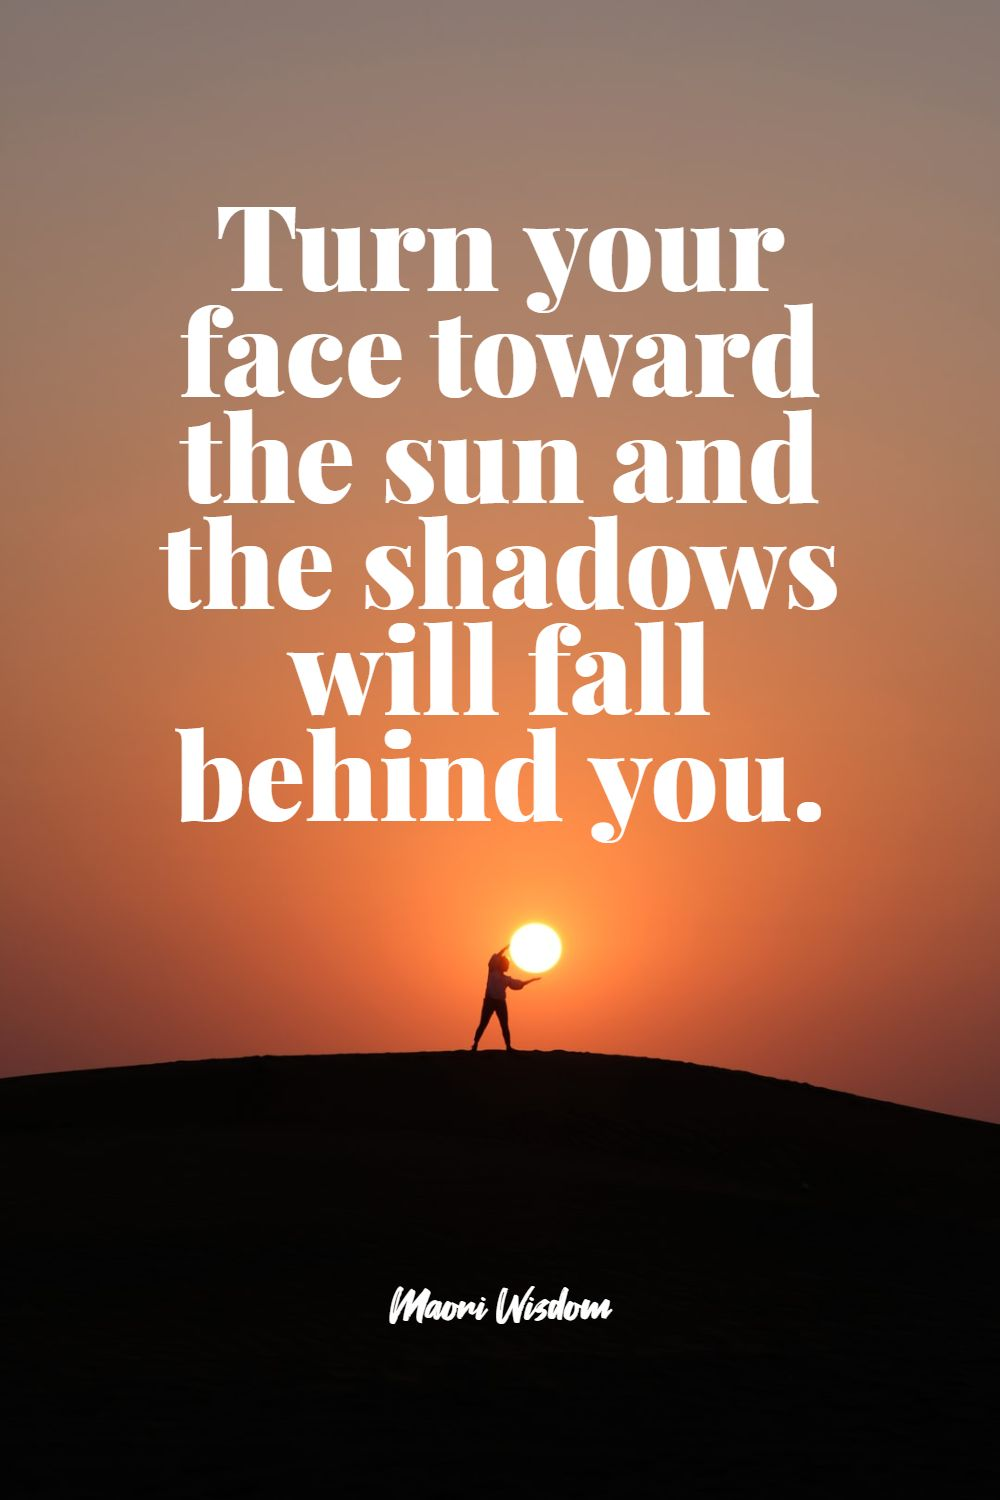 Quotes image of Turn your face toward the sun and the shadows will fall behind you.